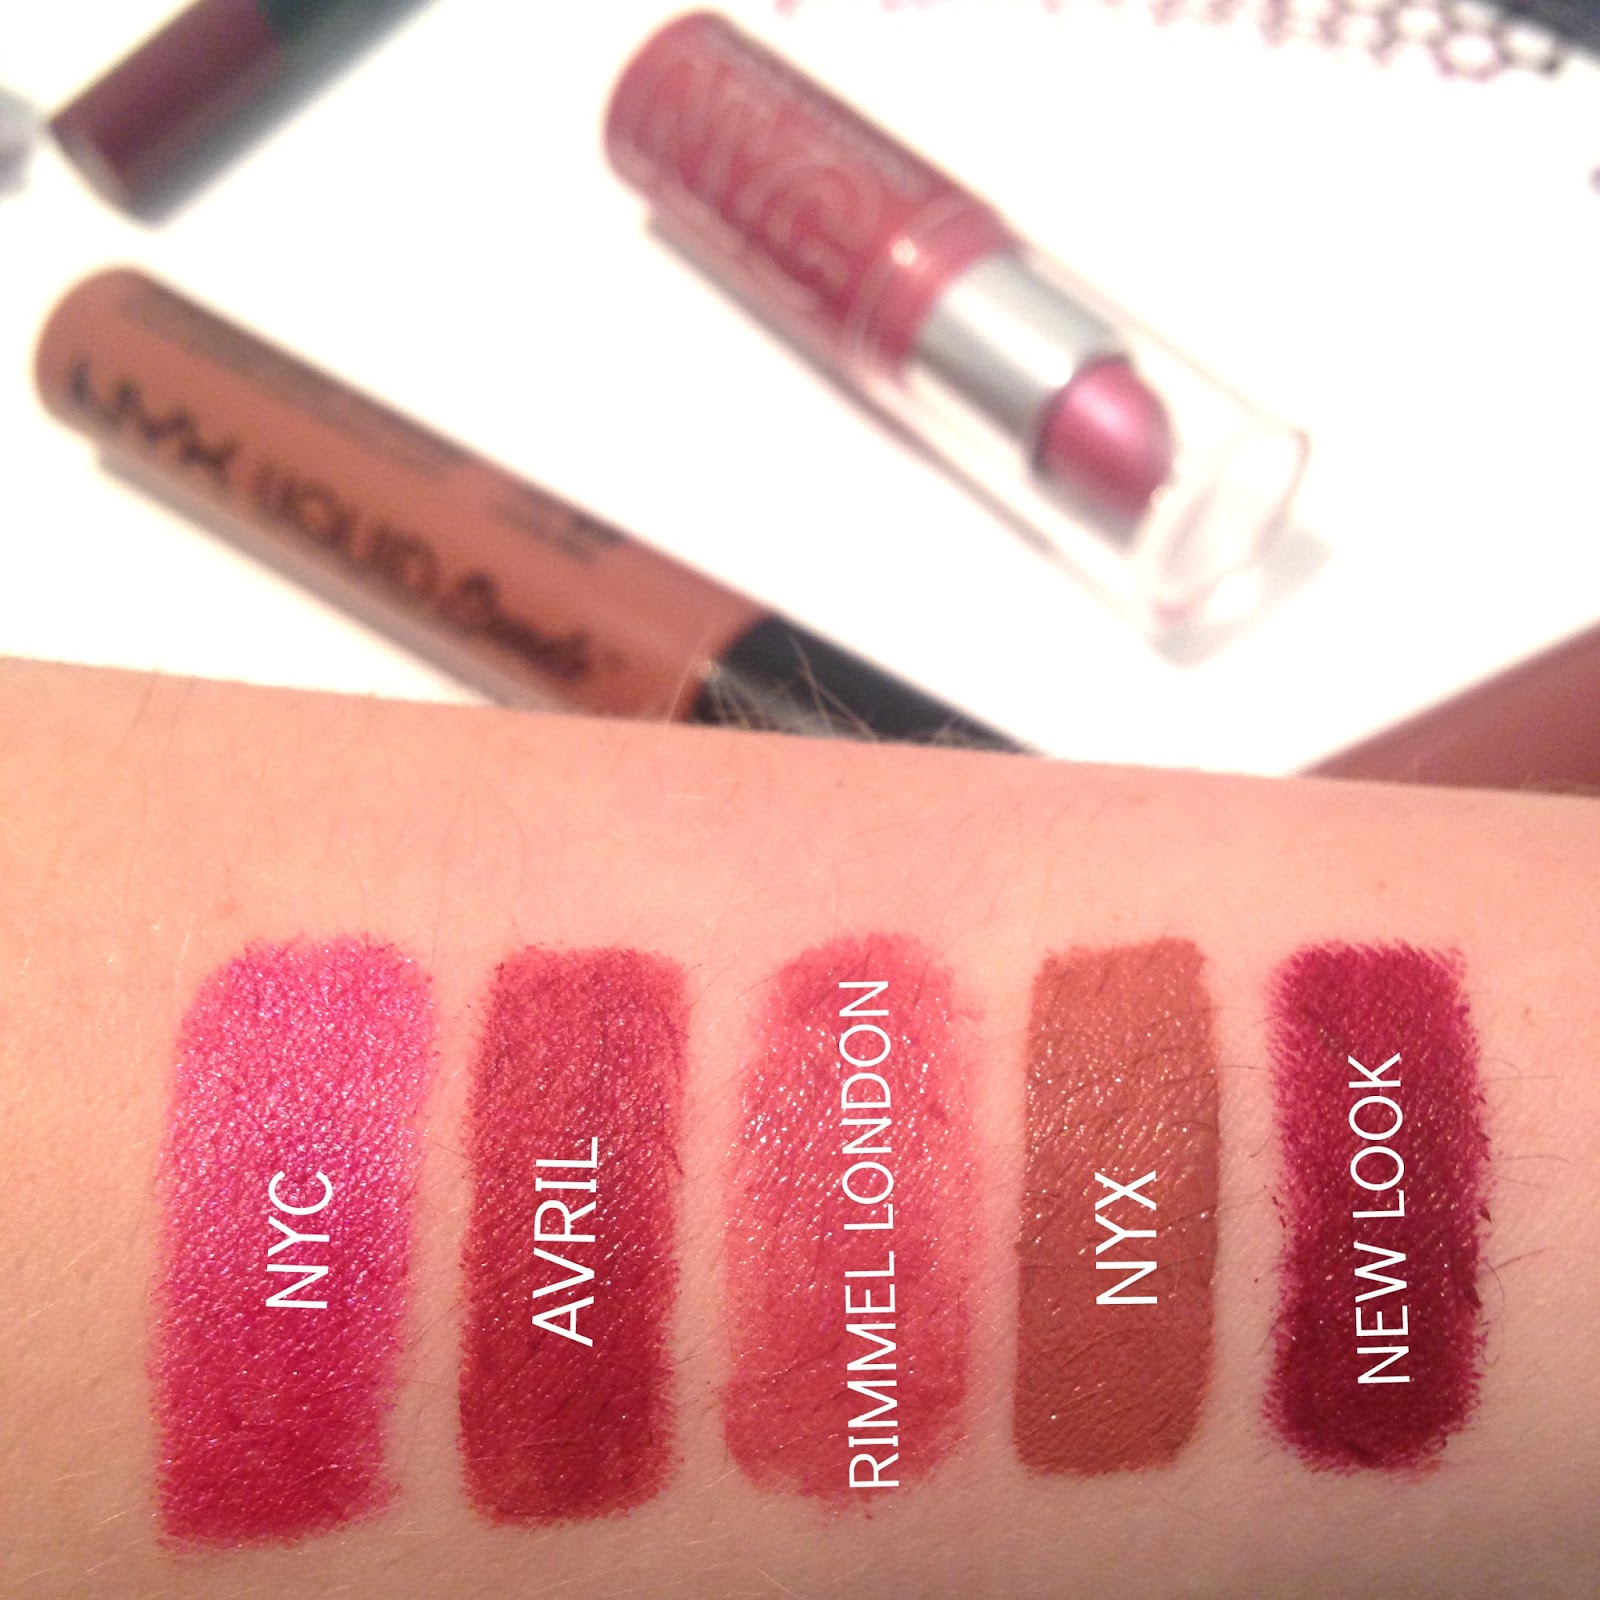 My Go-To Lipsticks All Under £10 Swatches